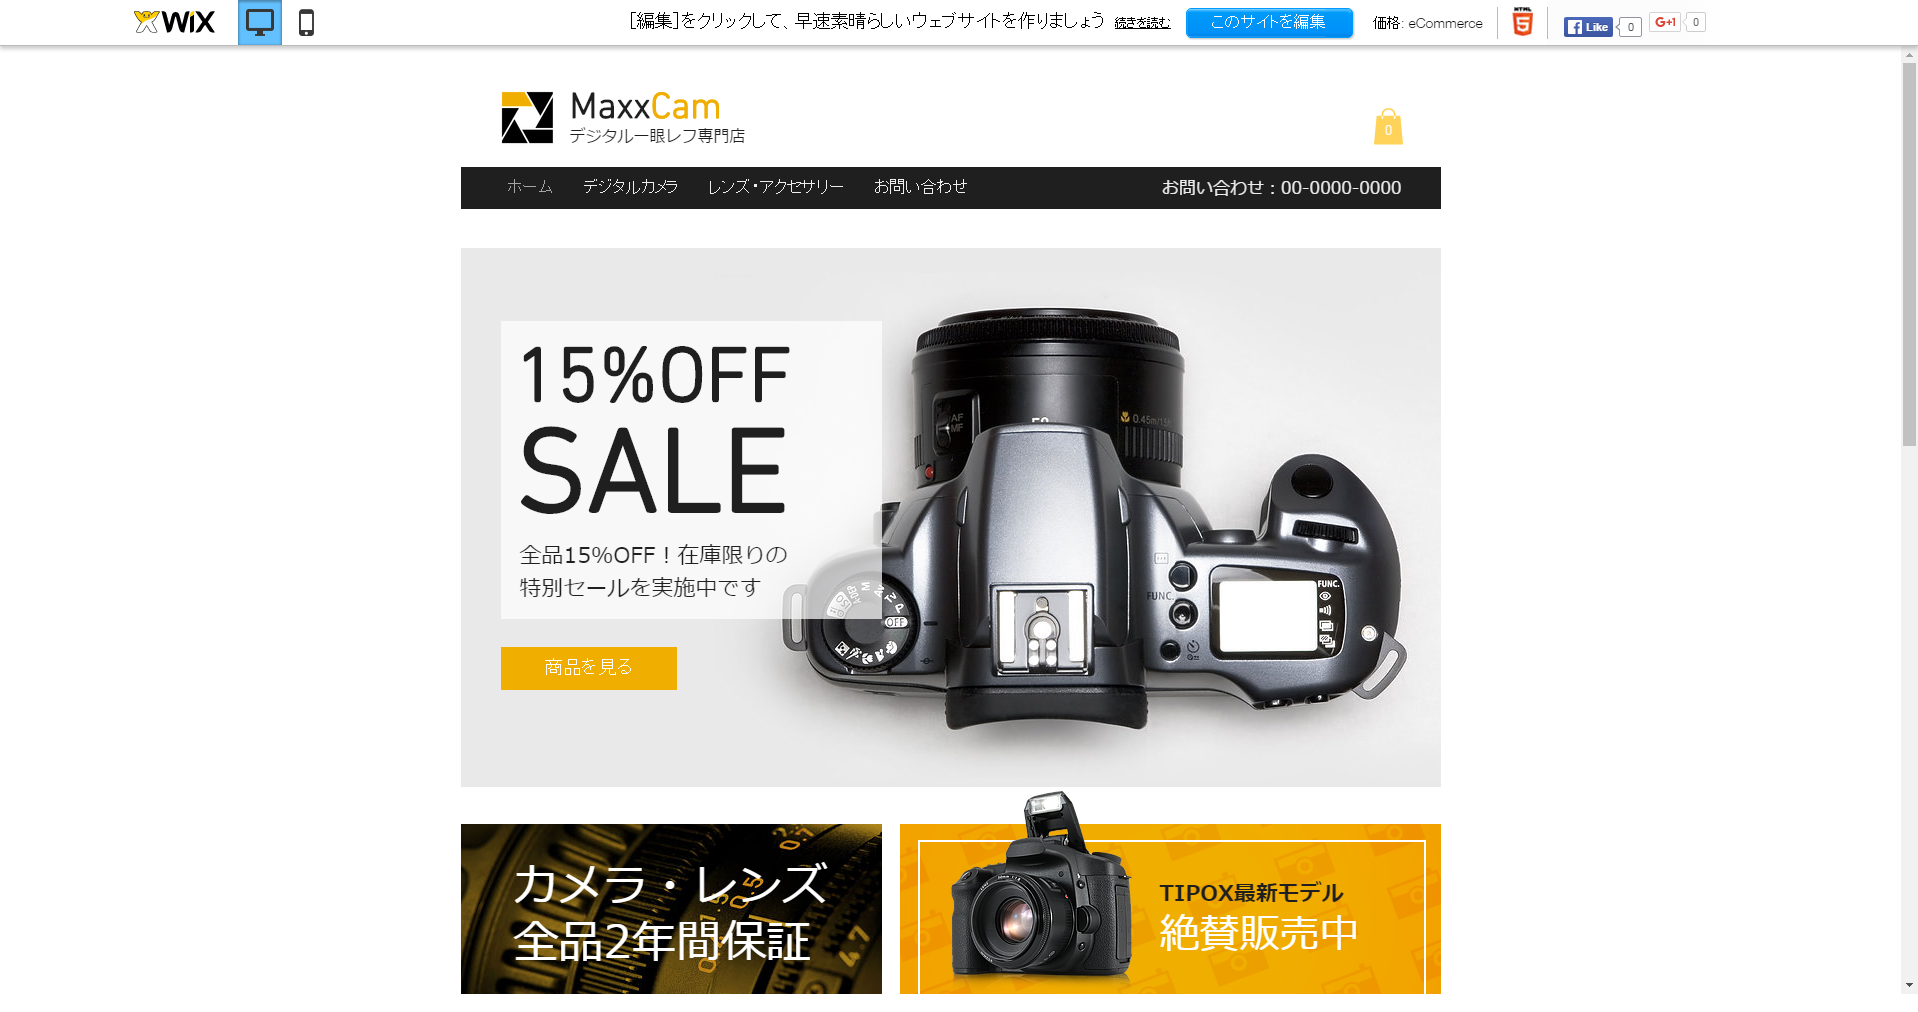 FireShot Capture 18 - カメラショップ テンプレート I WIX_ - http___ja.wix.com_website-template_view_html_1625